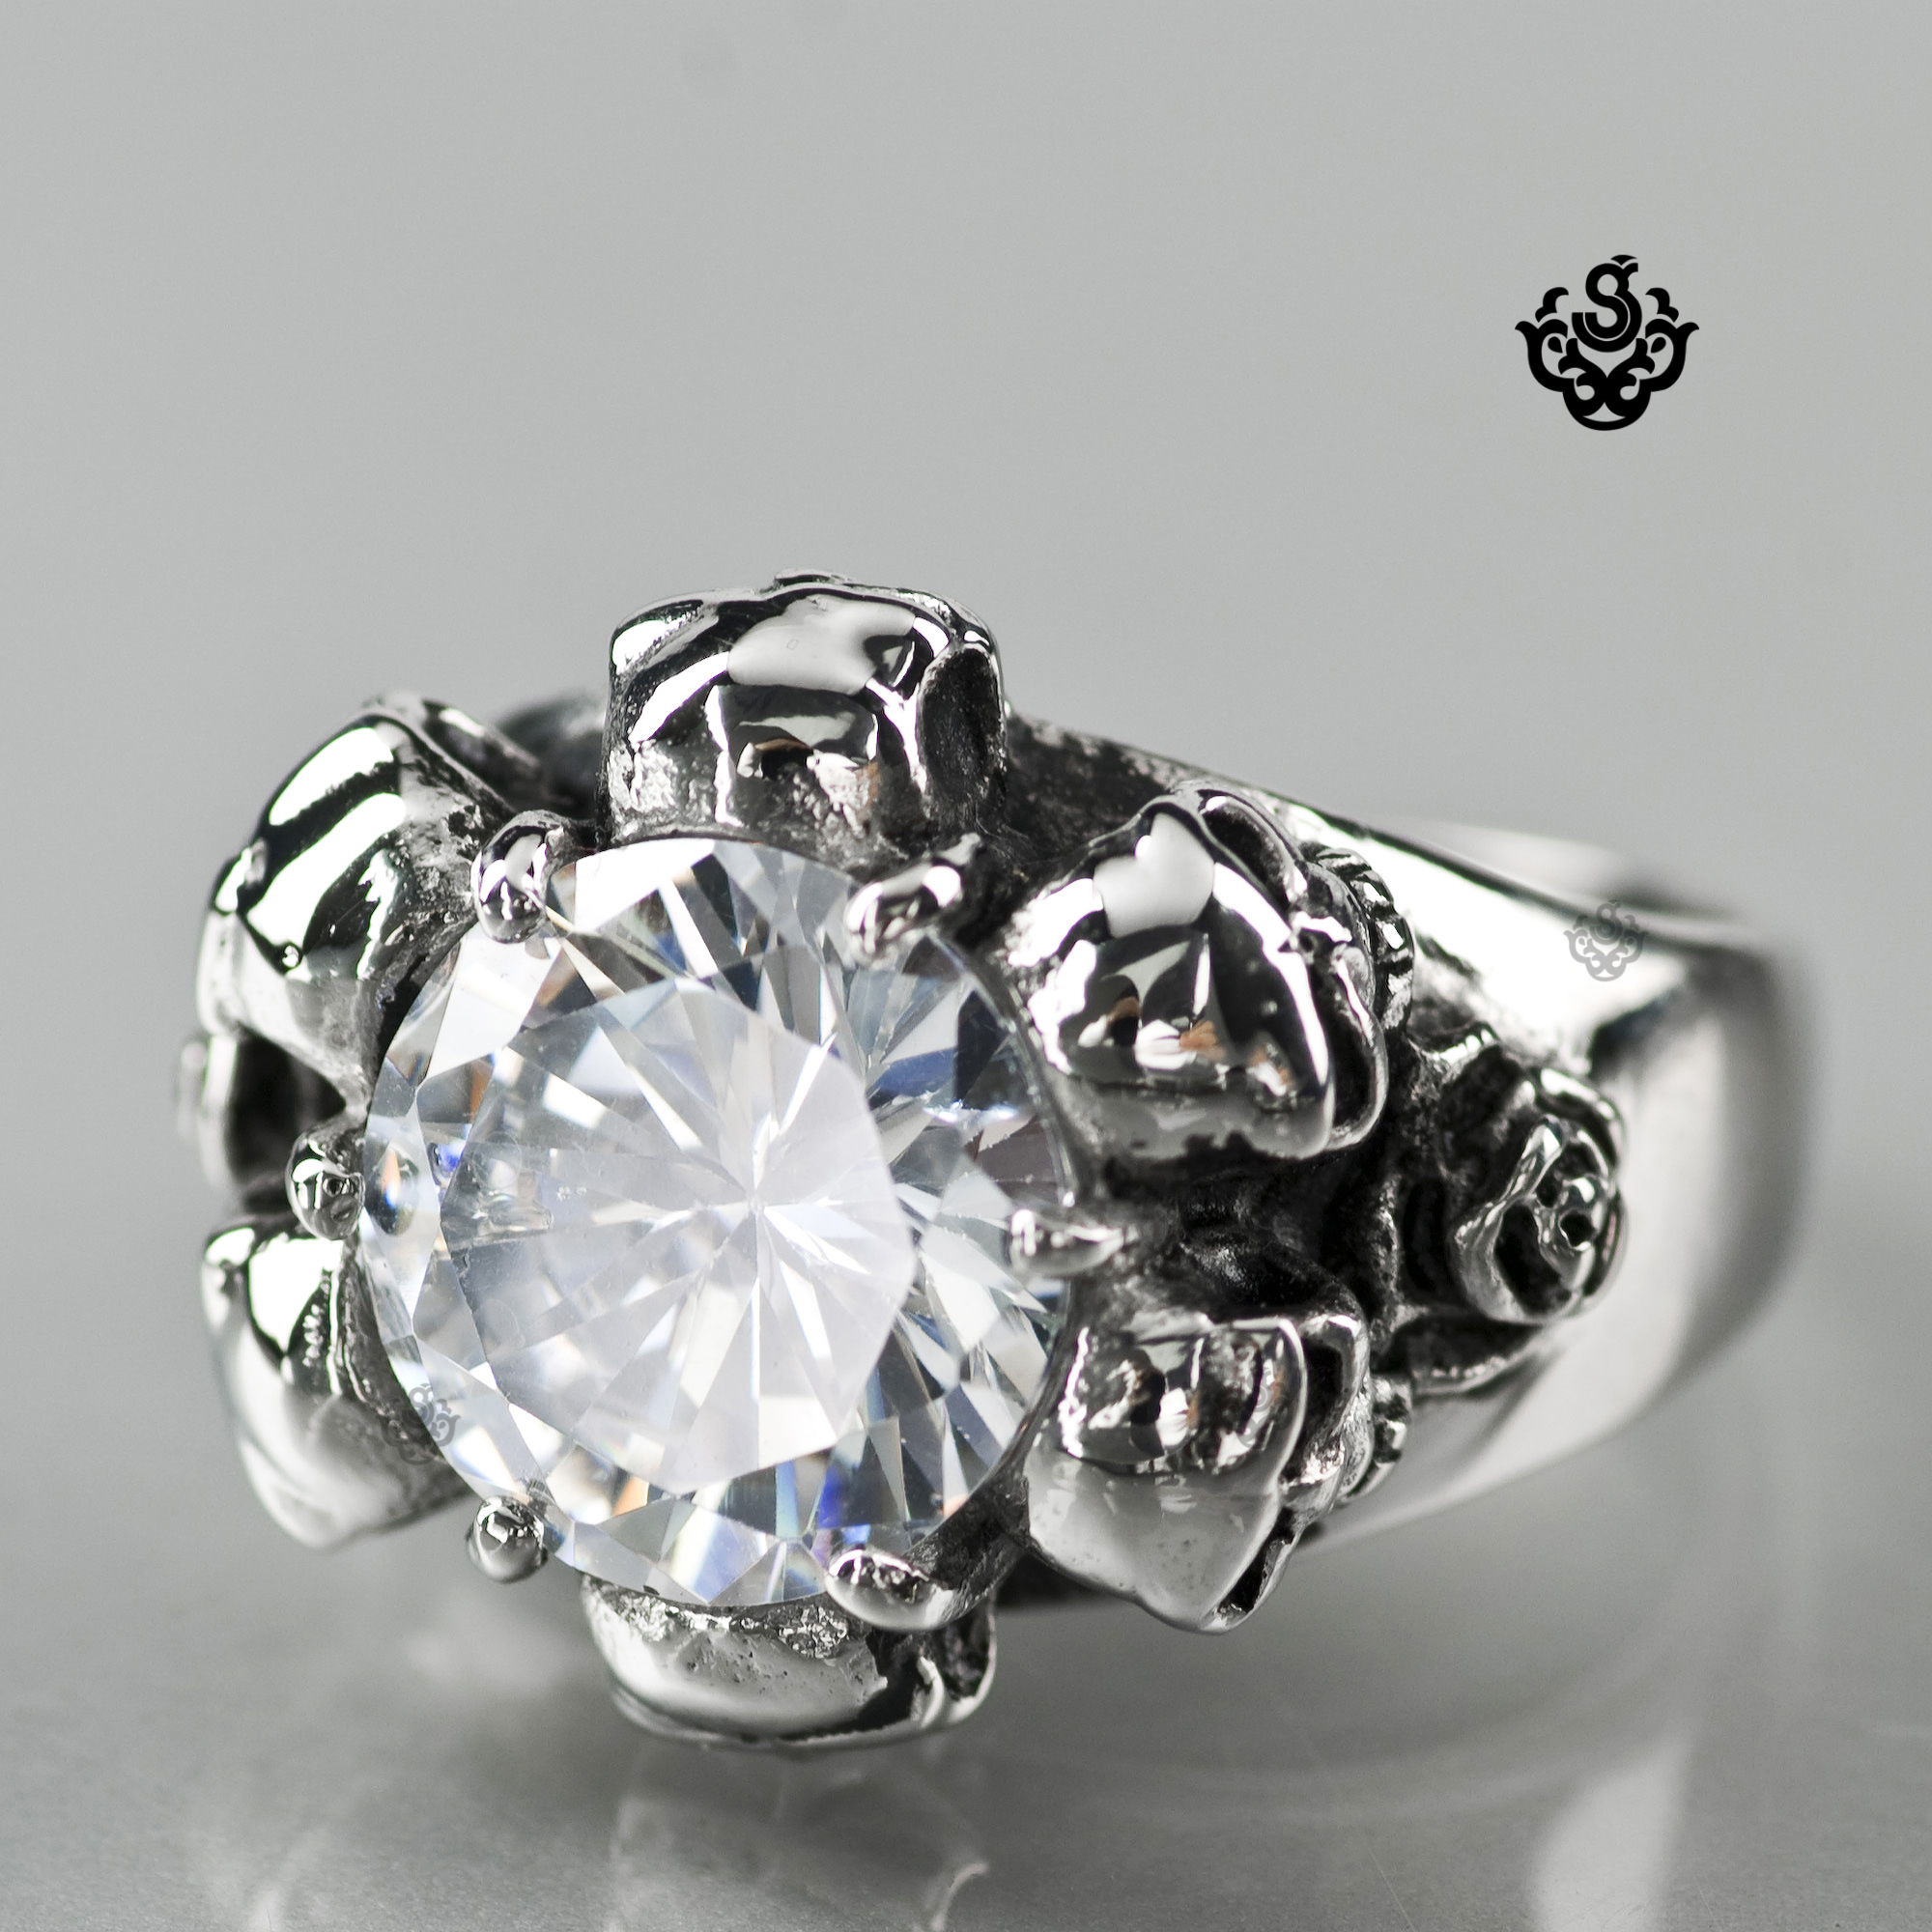 diamond spicyice iced sterling out rings ring silver championship bling mens collections simulated